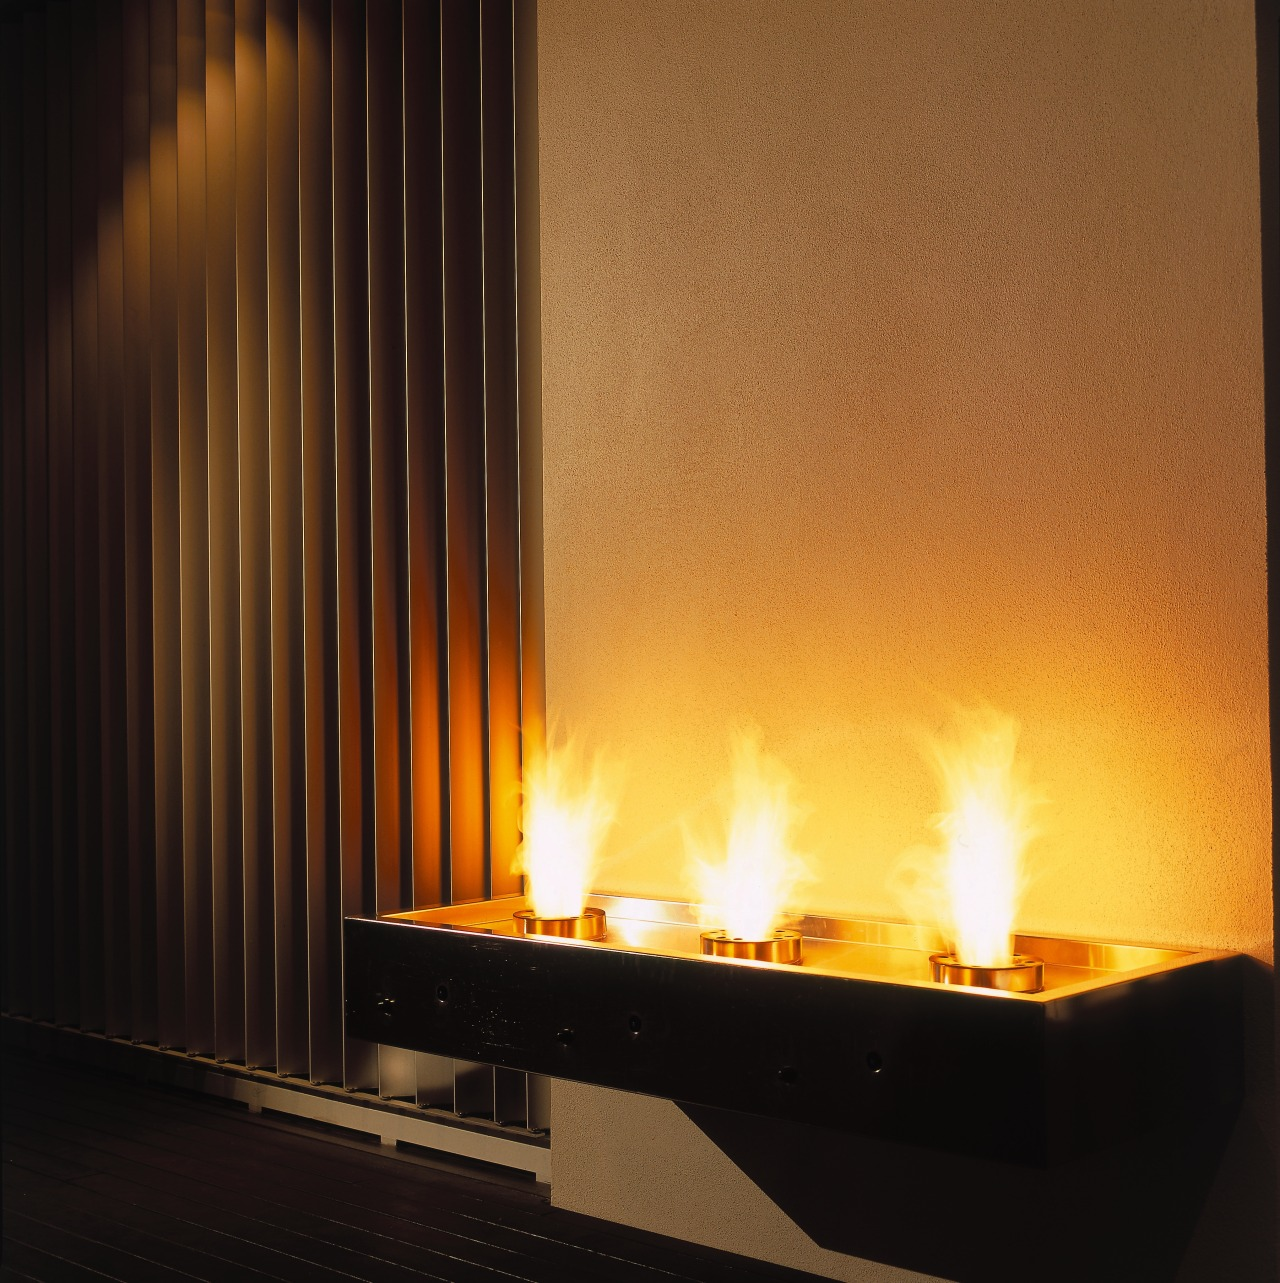 Outdoor gas flares on decking area. fireplace, flame, hearth, heat, interior design, black, brown